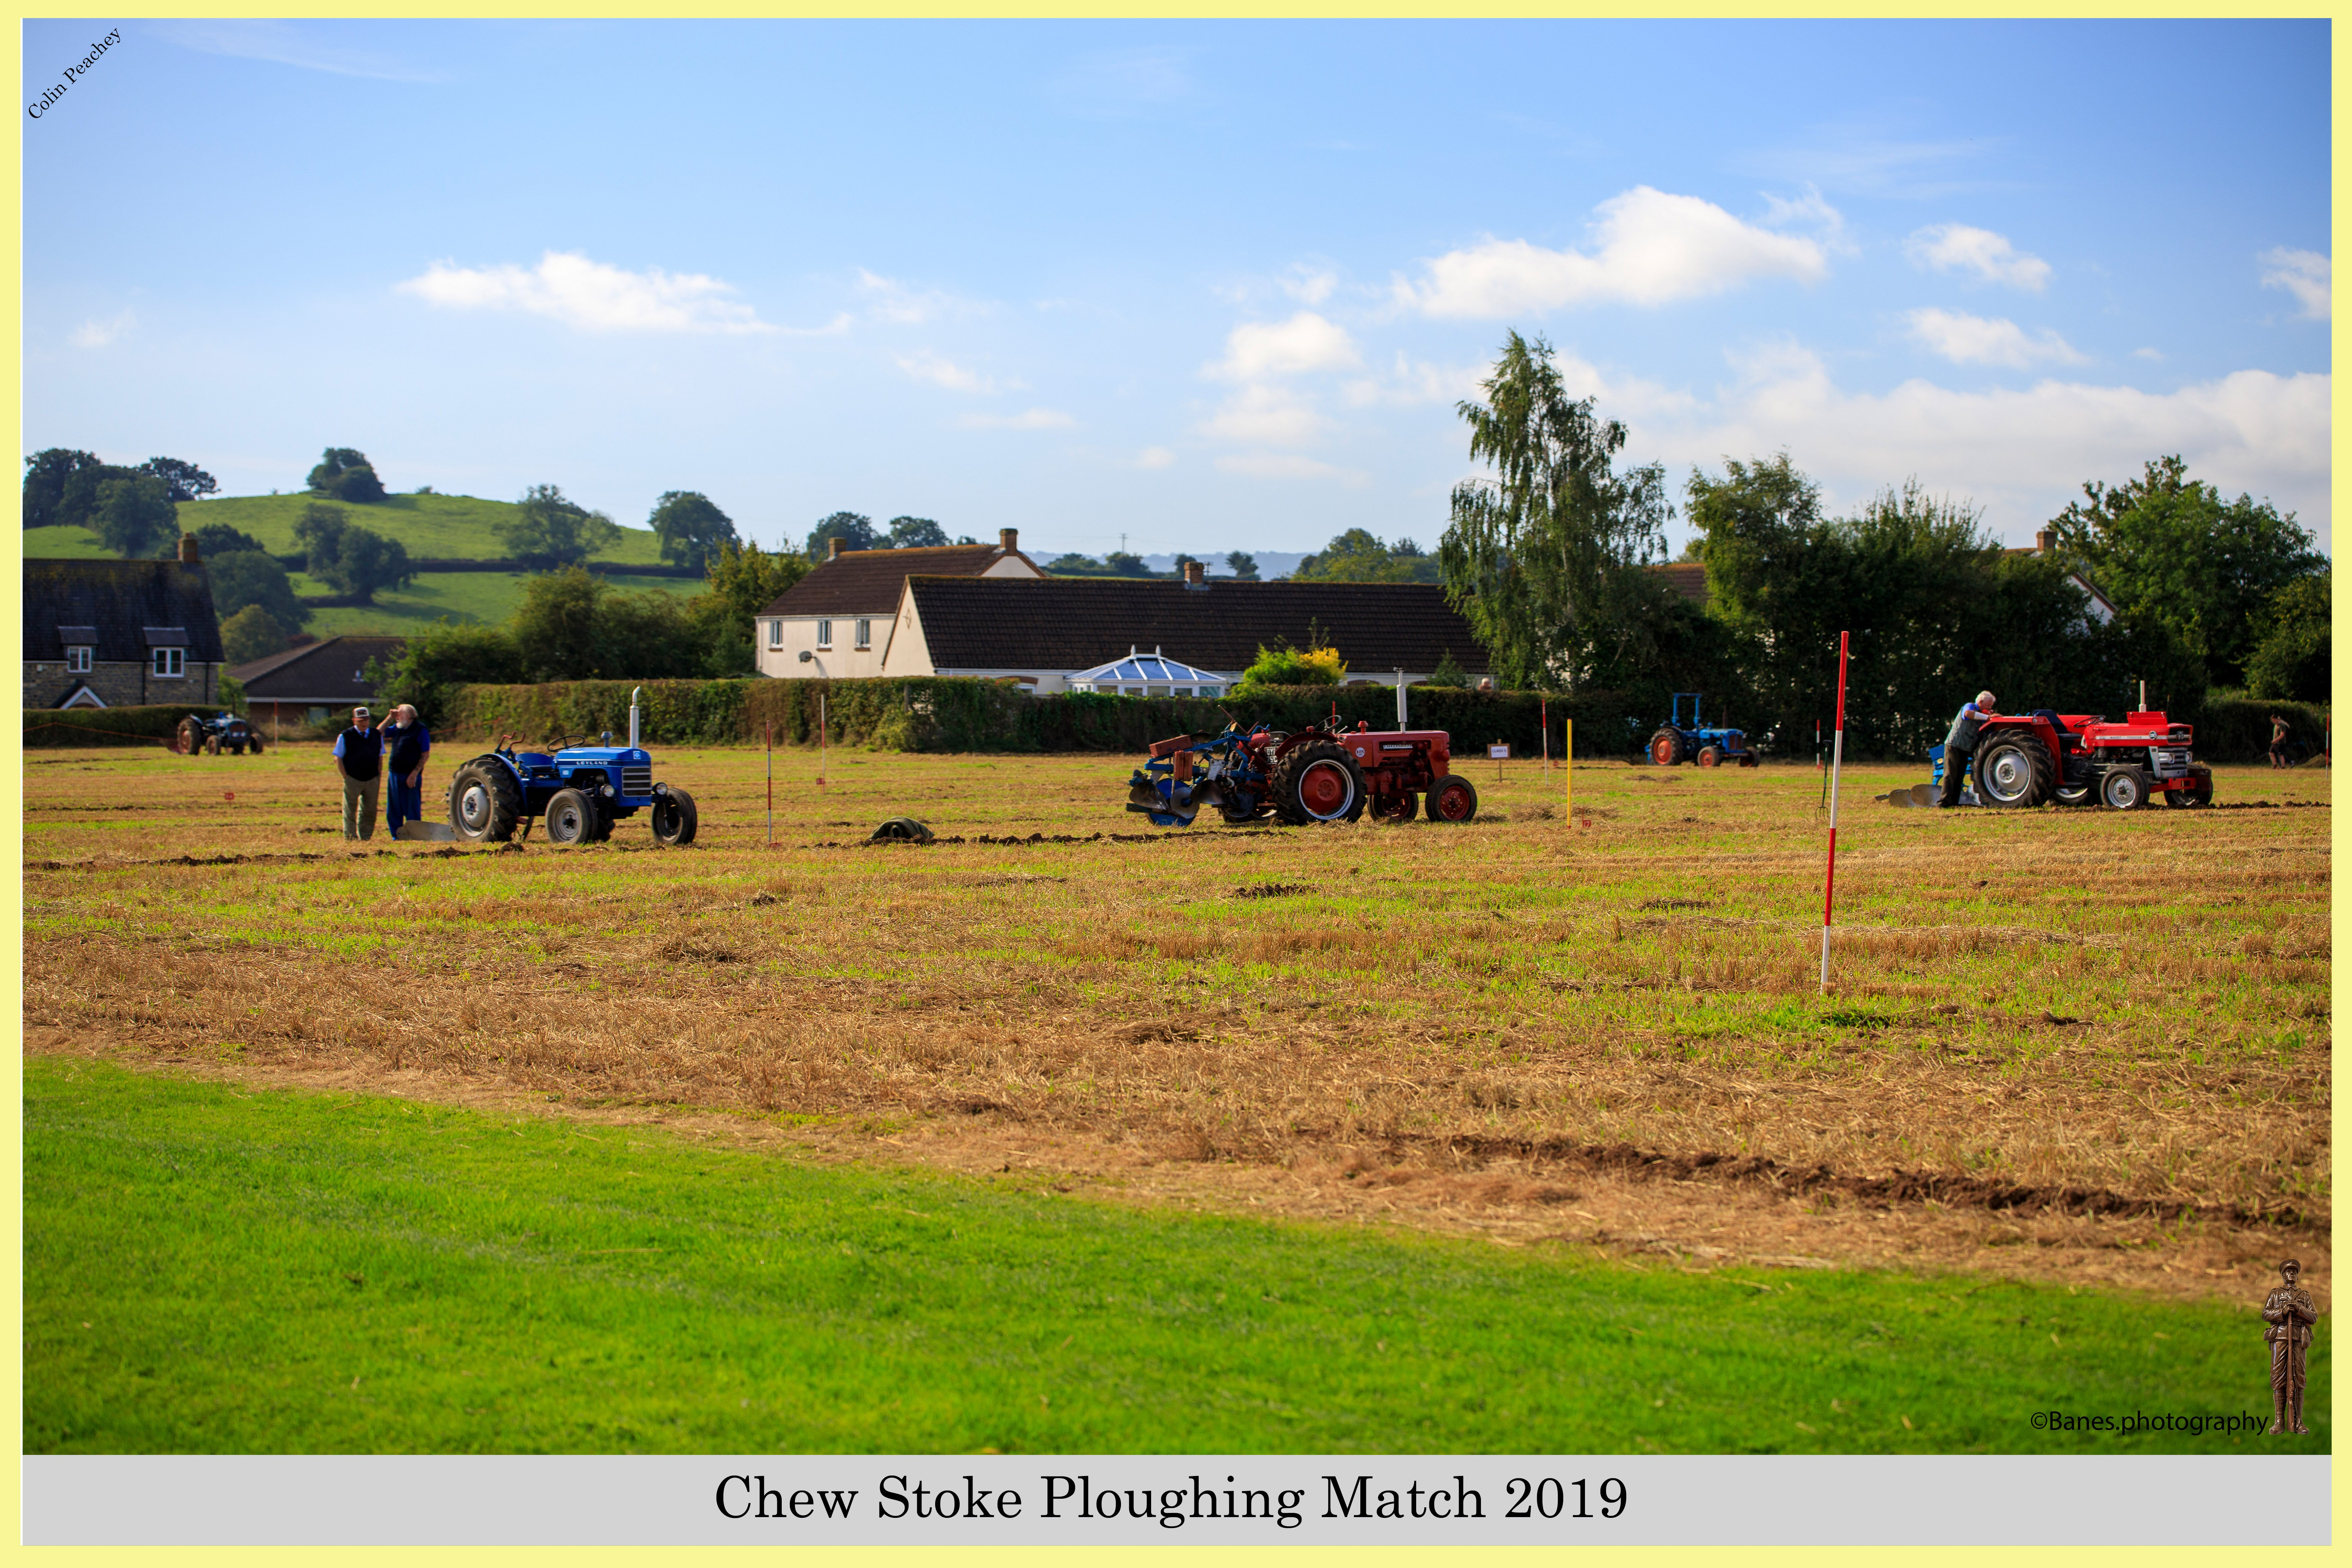 Vintage Tractor at Chew Stoke Ploughing Match 2019